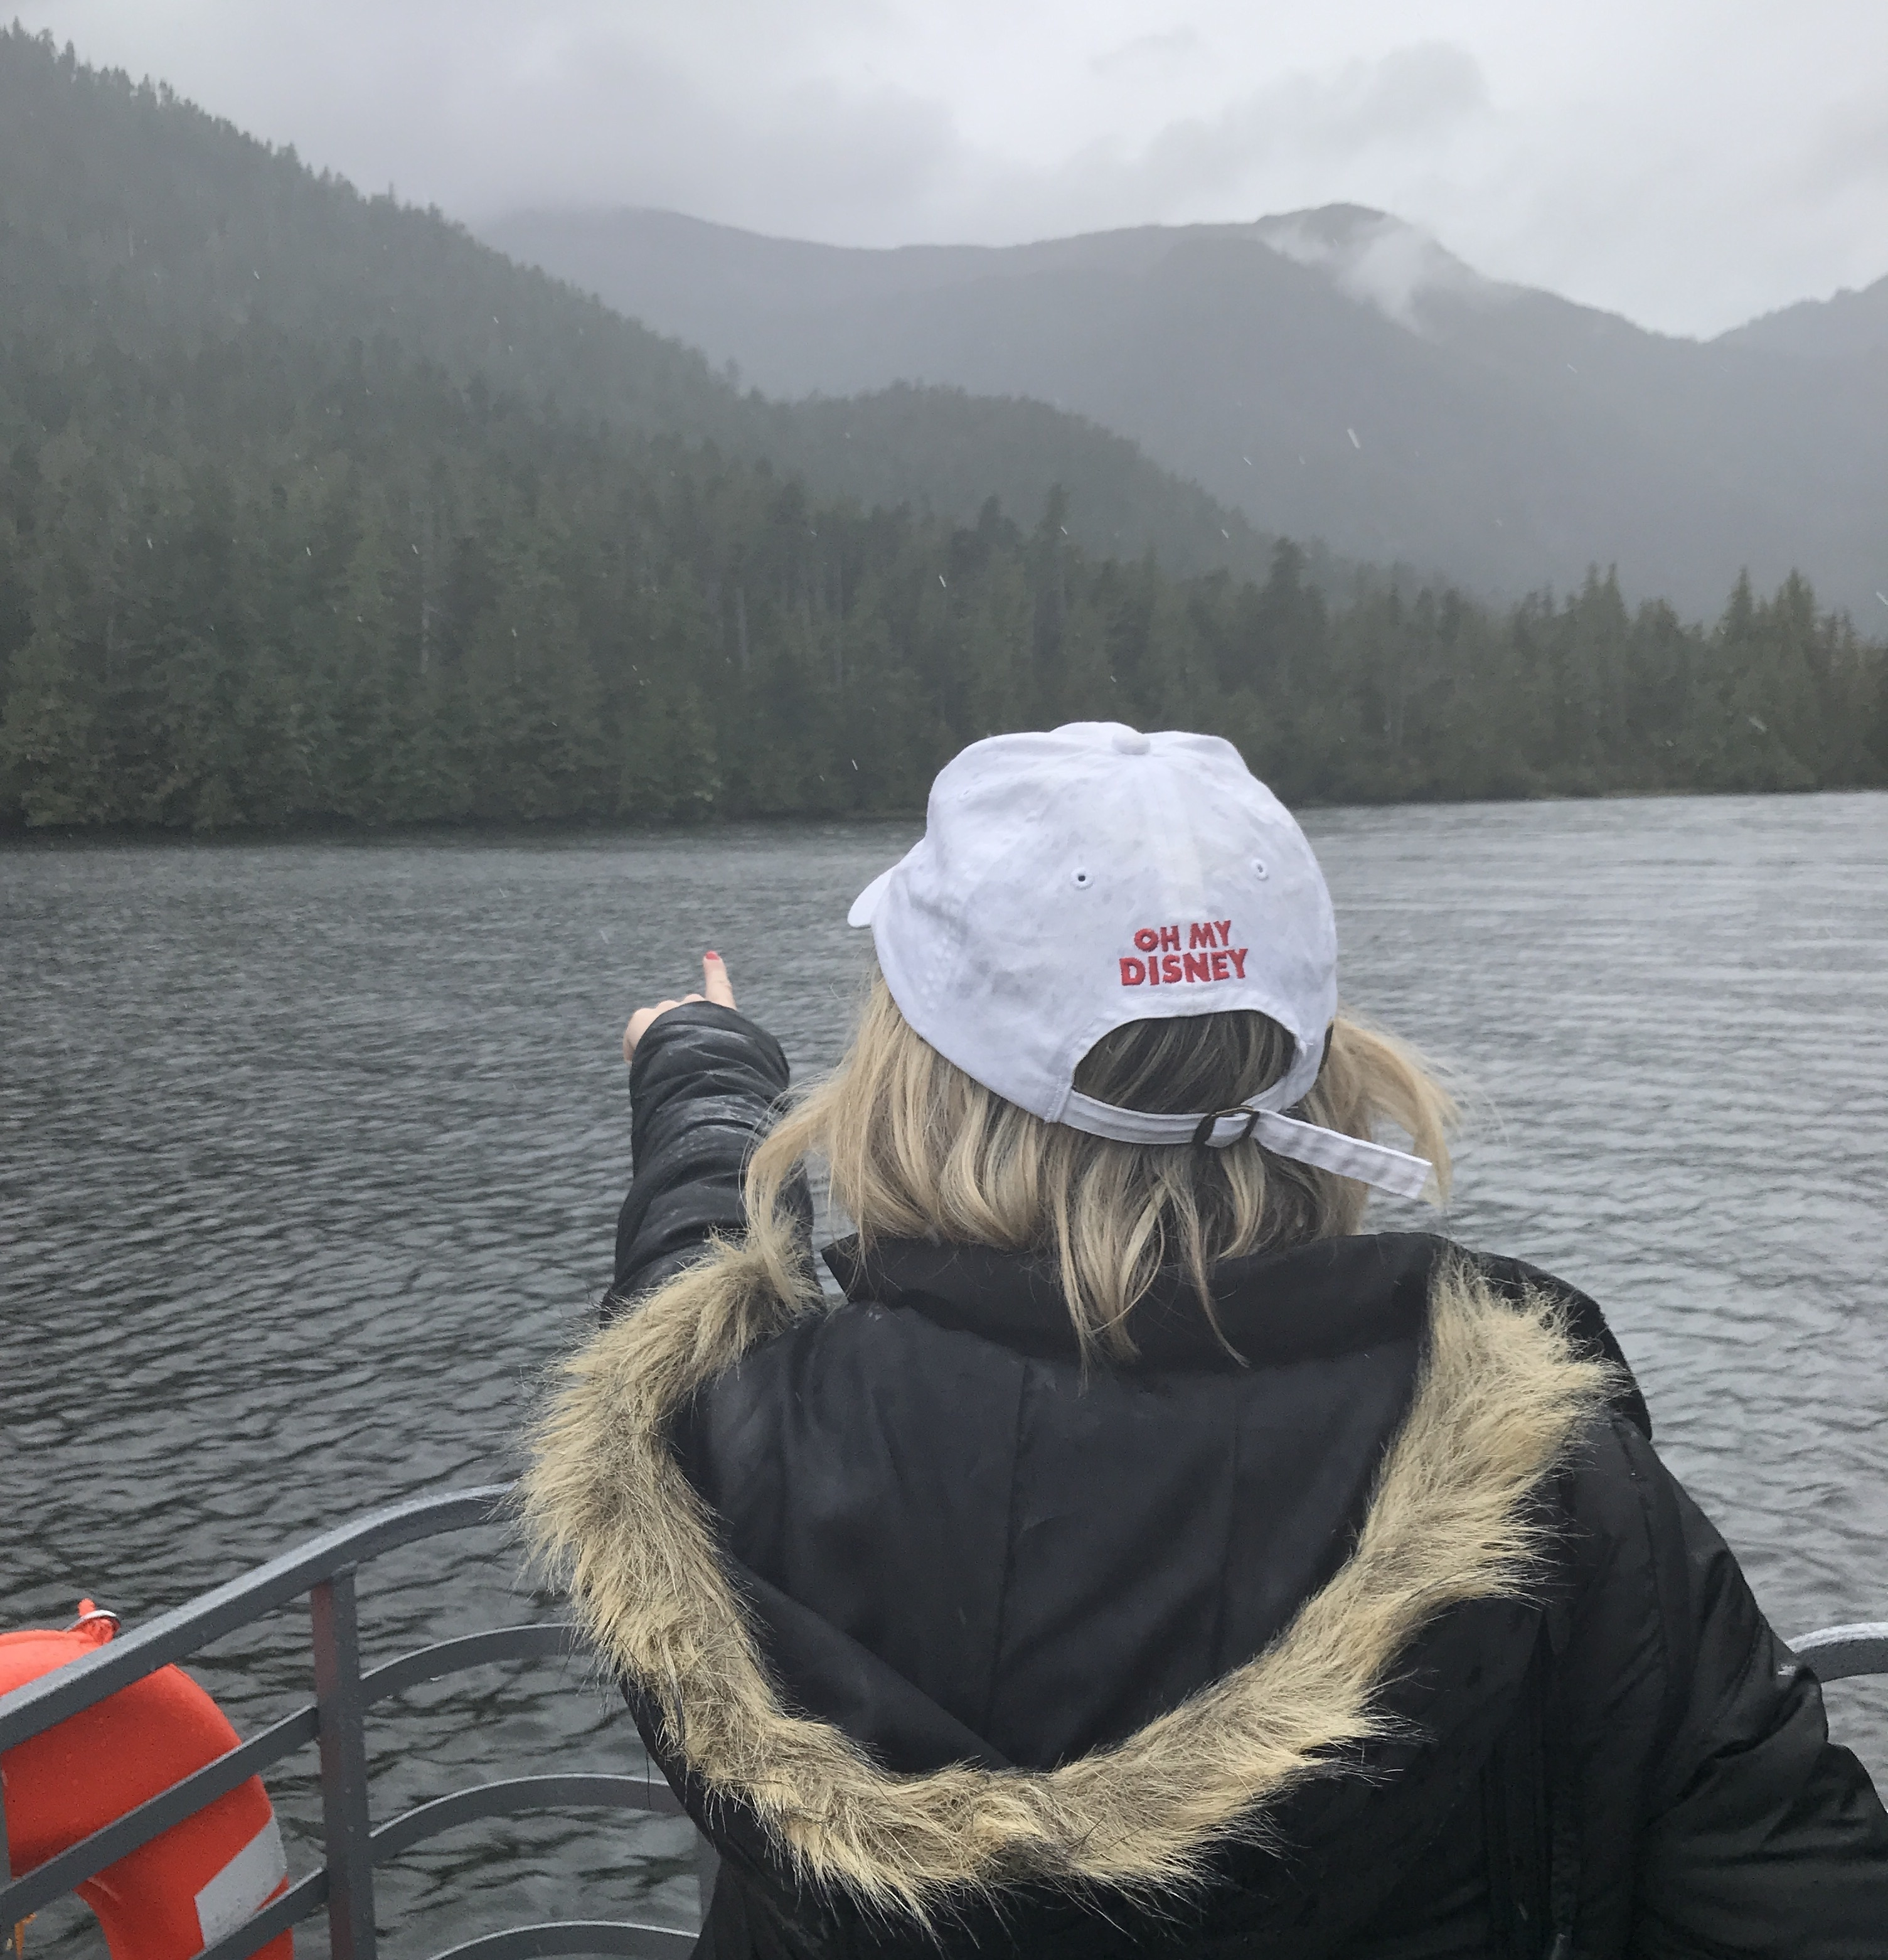 Ketchikan Boat Excursion on Disney Wonder Alaska Cruise with Host Wearing Oh My Disney Hat